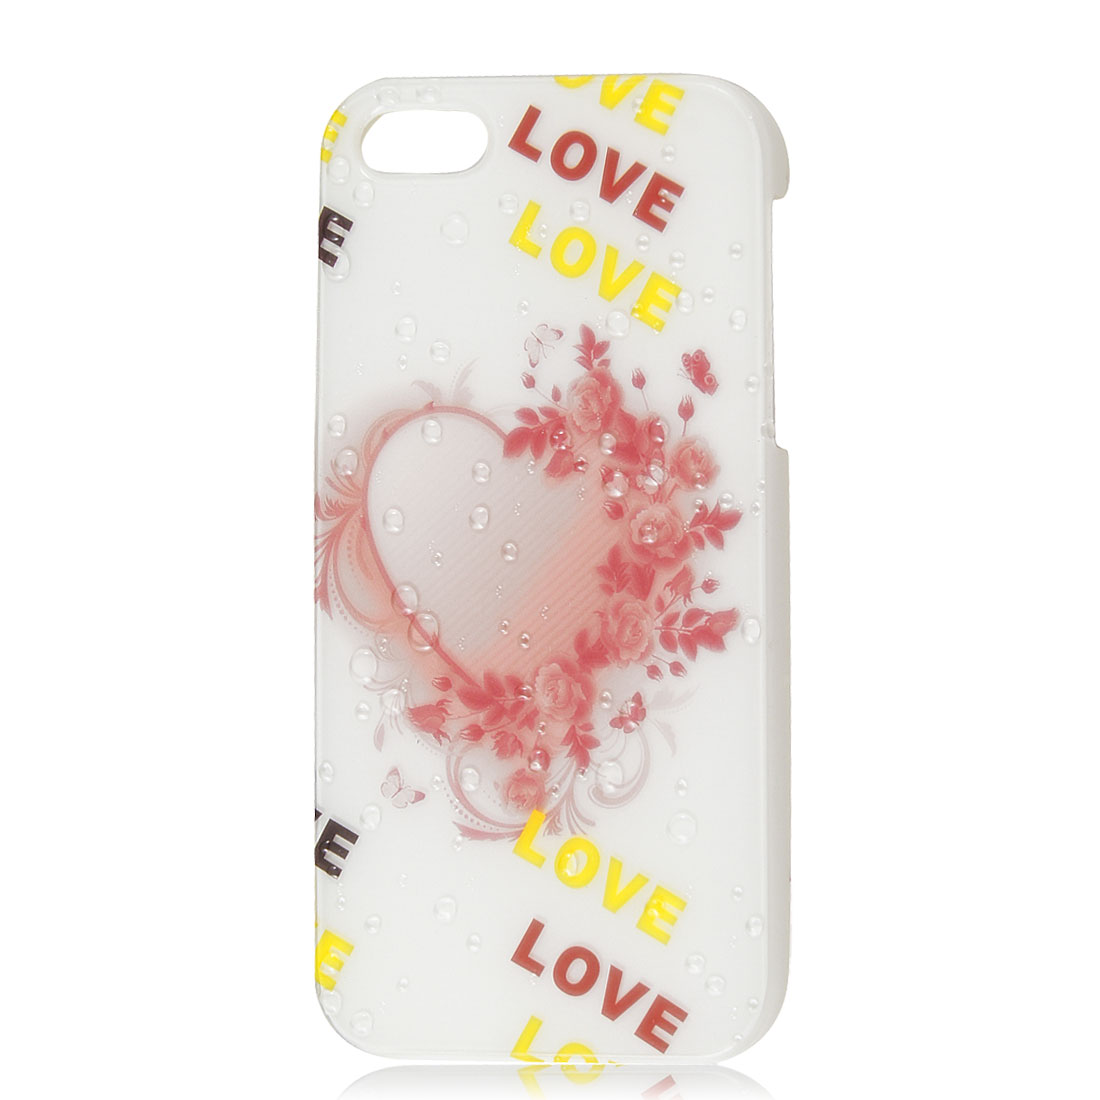 Heart Love 3D Raindrop Waterdrop Hard Back Case Skin Cover for iPhone 5 5G